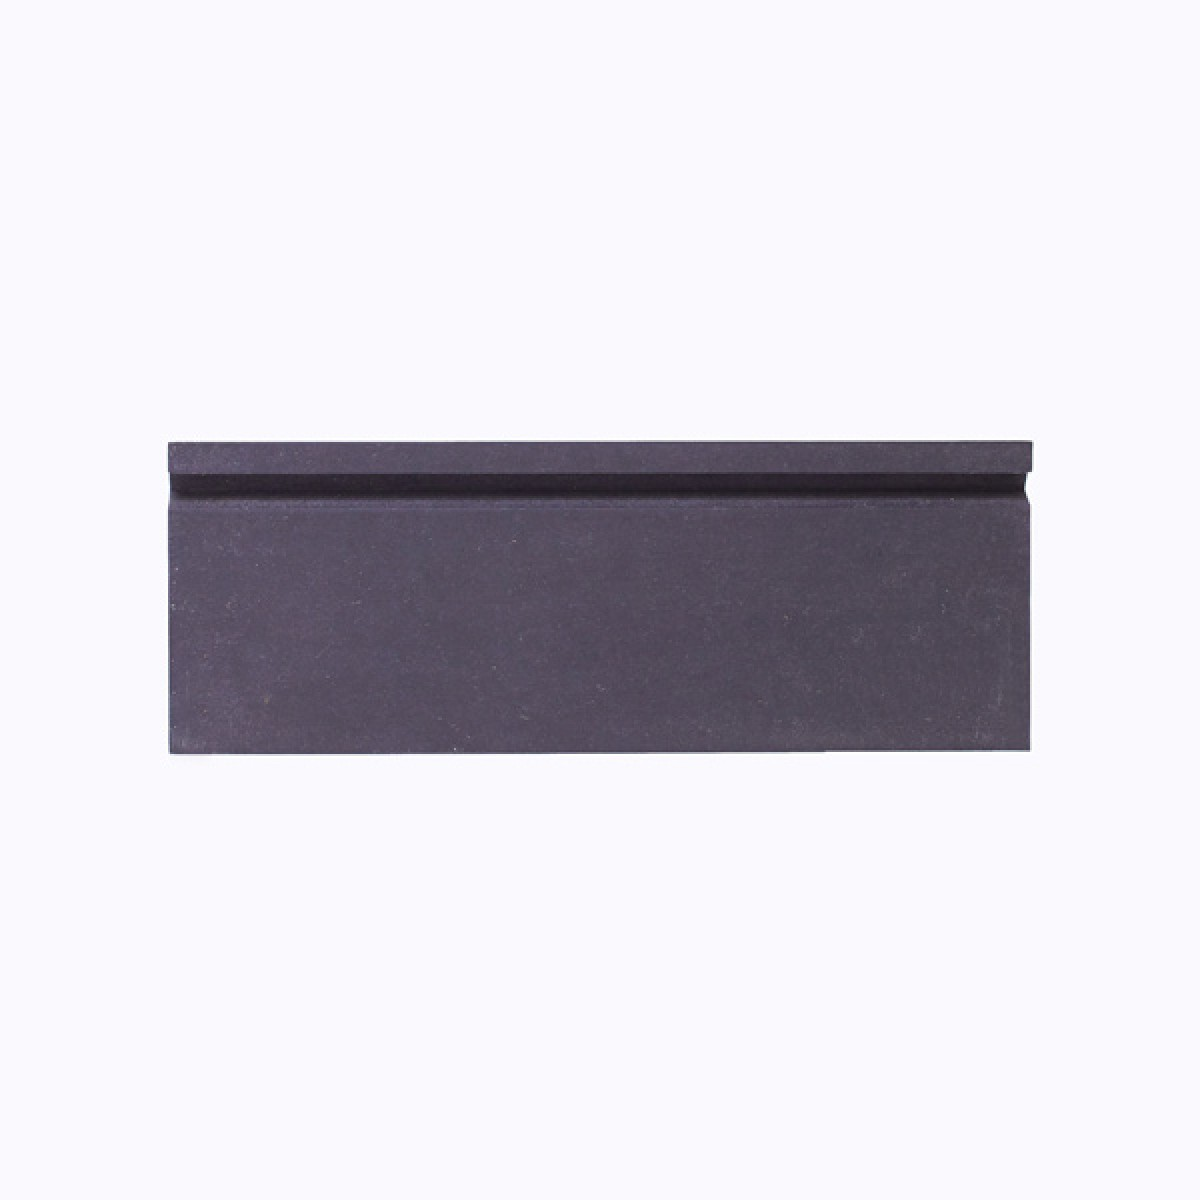 VINDUE BRICK IPAD HOLDER - BLACK